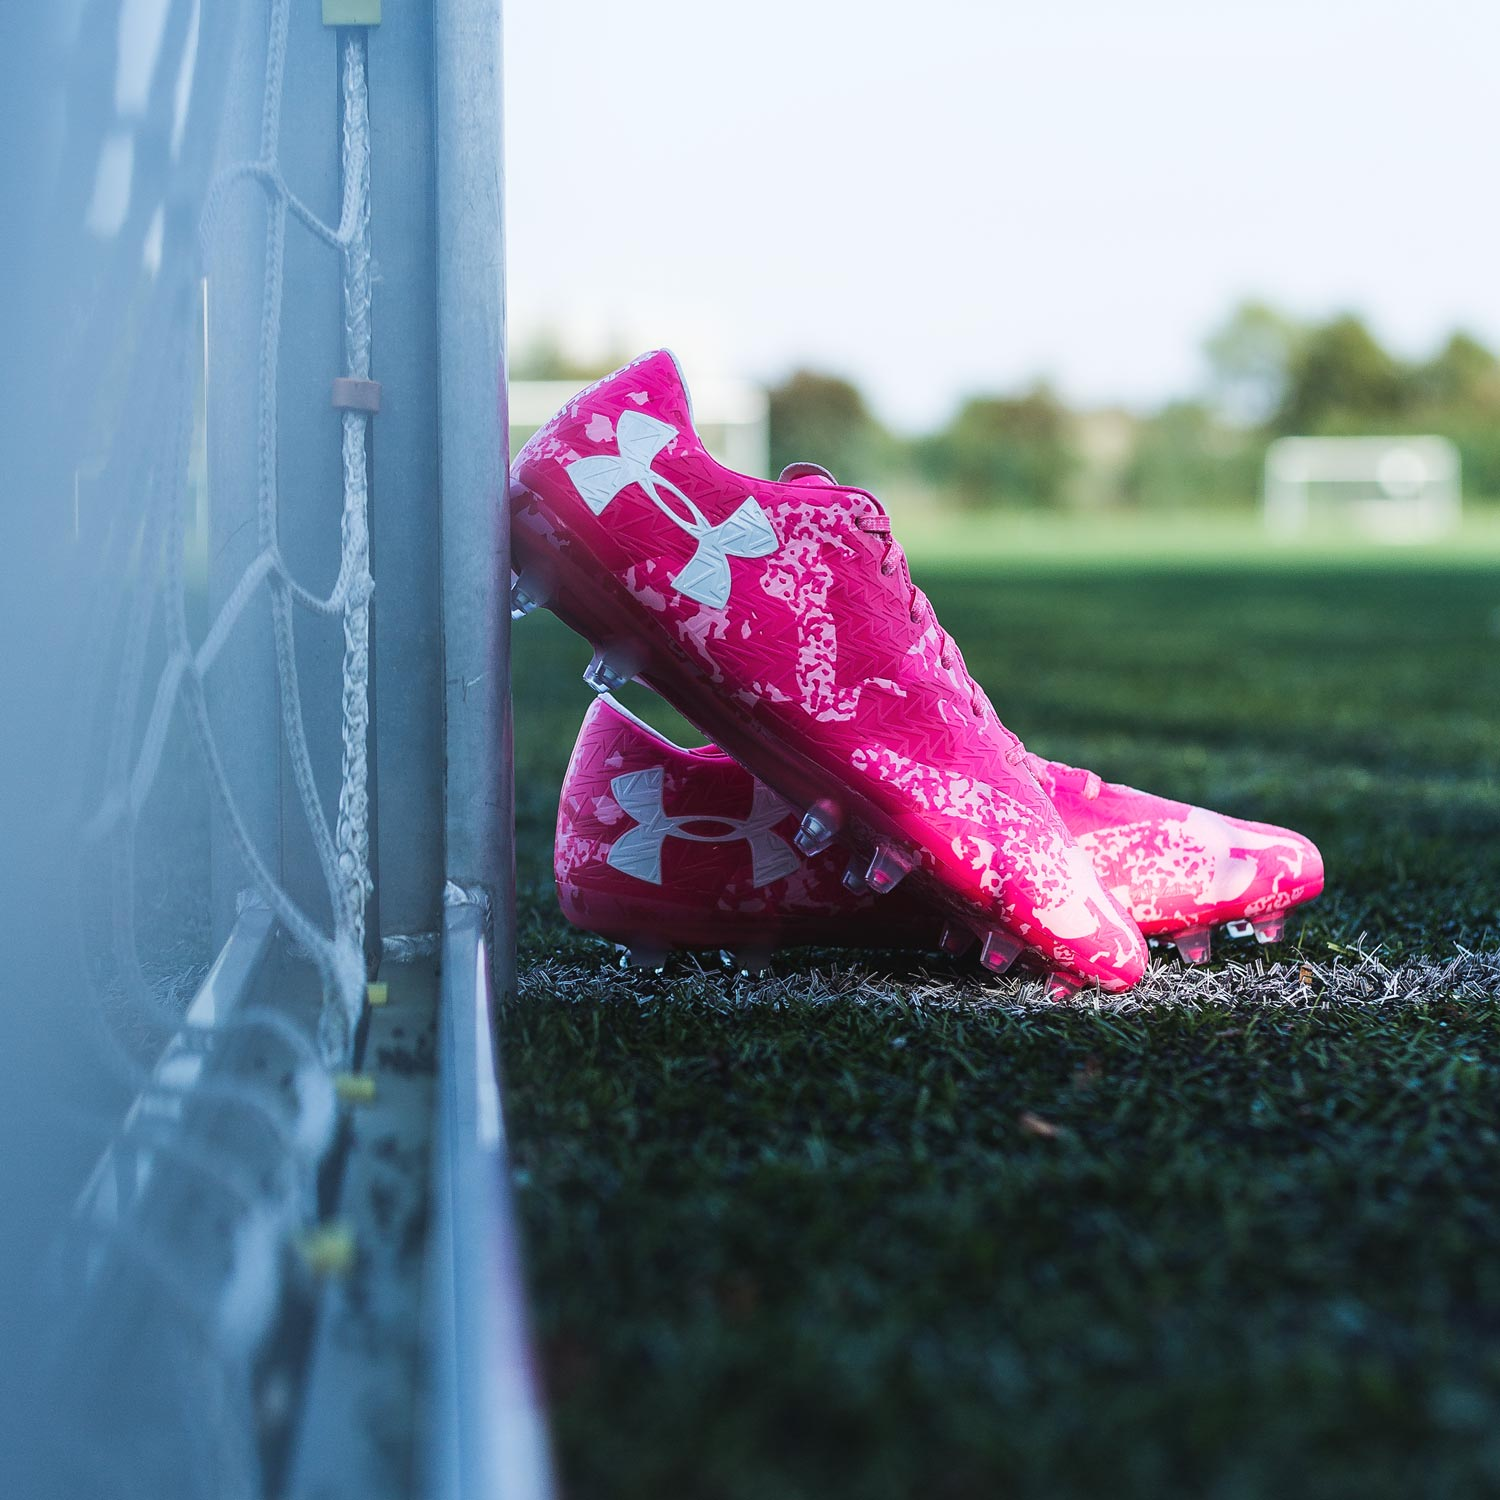 newest 5fba5 91038 ... Boasting pink colorways, both the new Under Armour Spotlight and ClutchFit  Power in Pink soccer ...